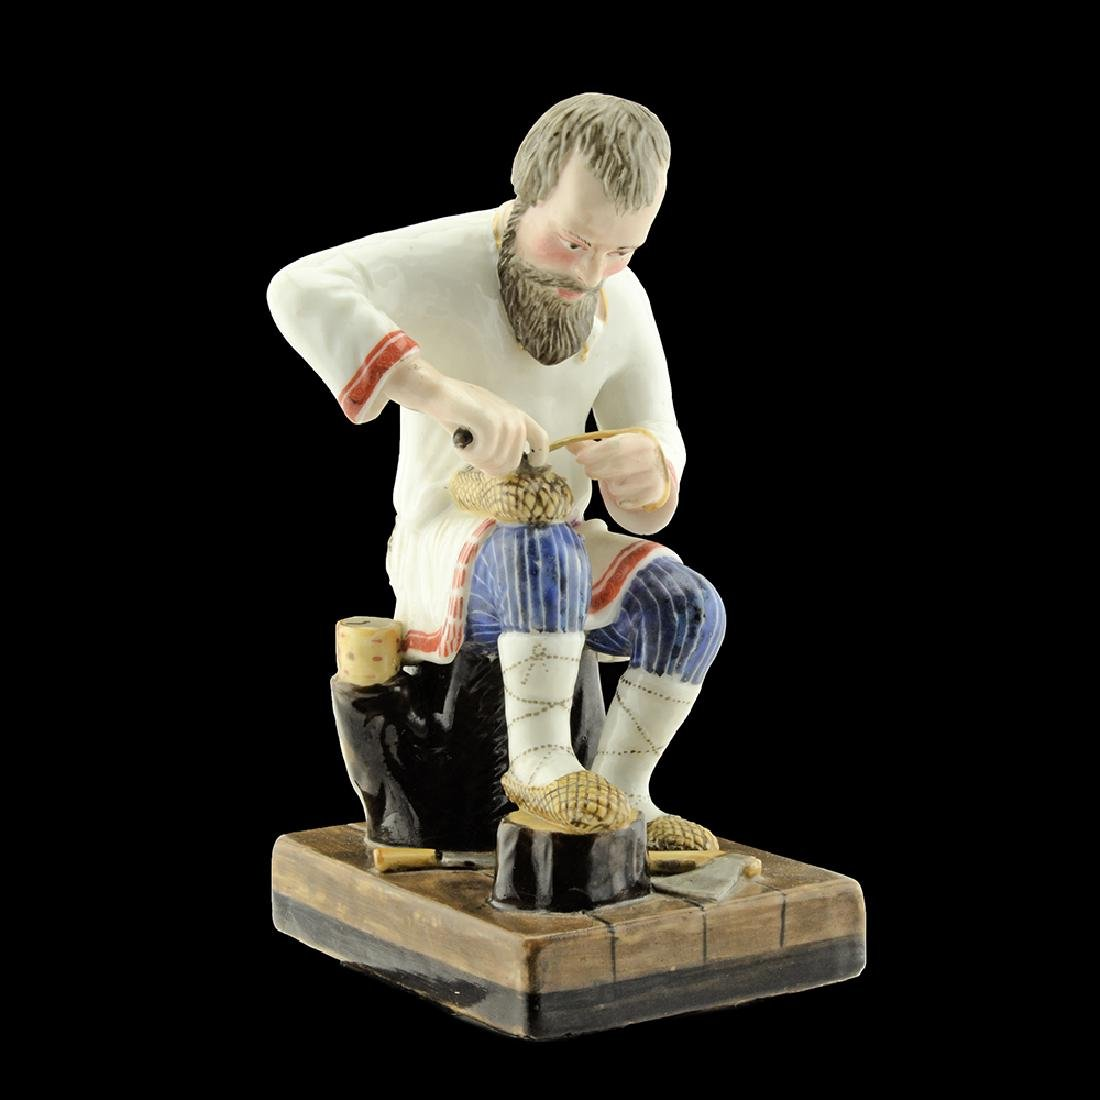 Russian Miklashevsky Factory Porcelain Figure Lapti